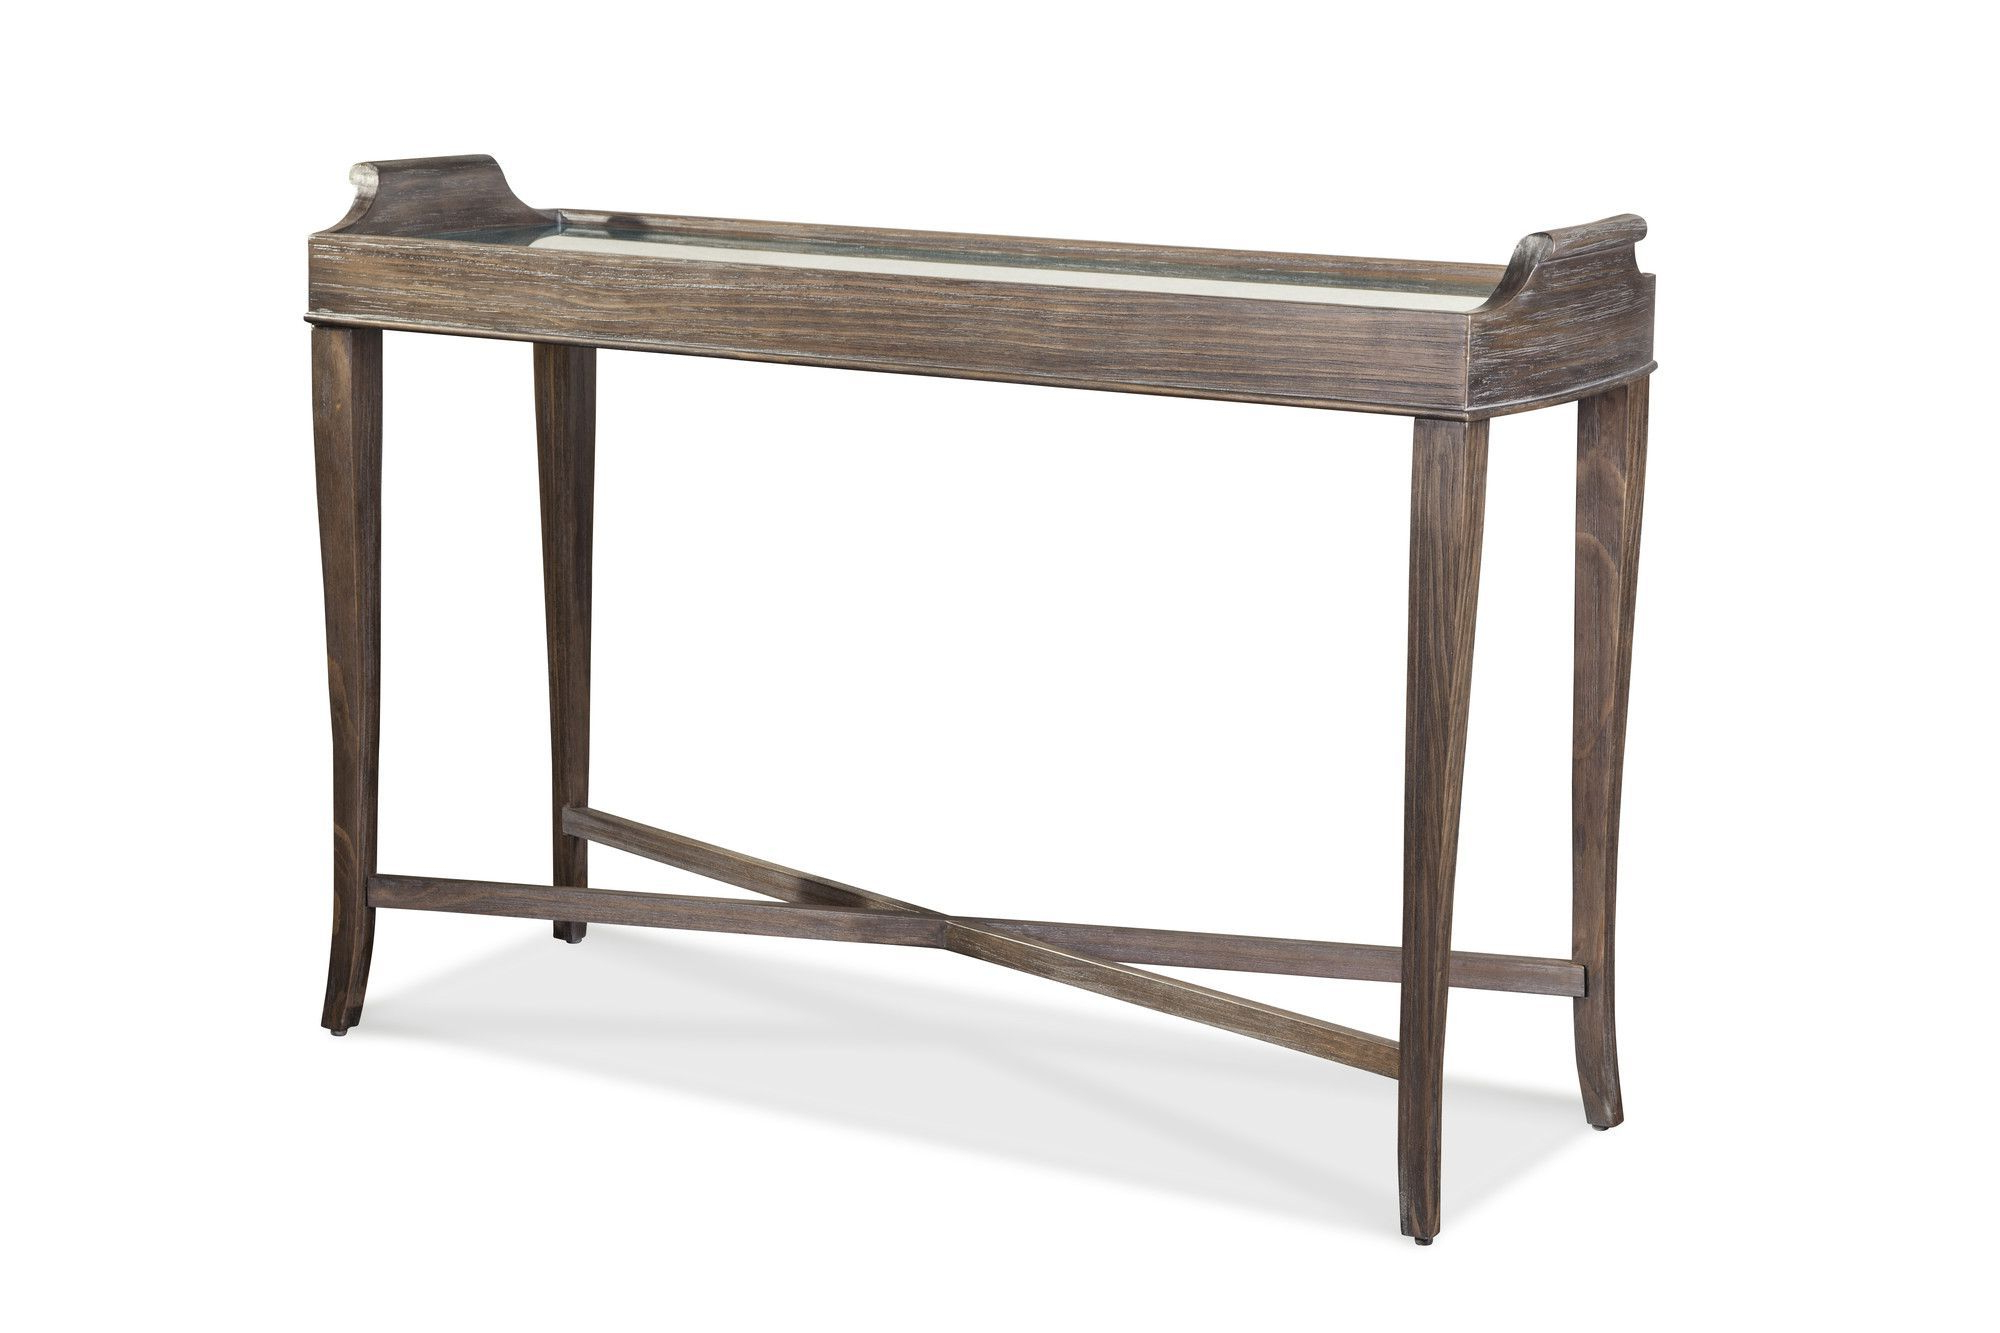 St. Germain Console Table | Products | Pinterest | Table, Console Regarding Parsons Concrete Top & Dark Steel Base 48X16 Console Tables (Gallery 8 of 20)